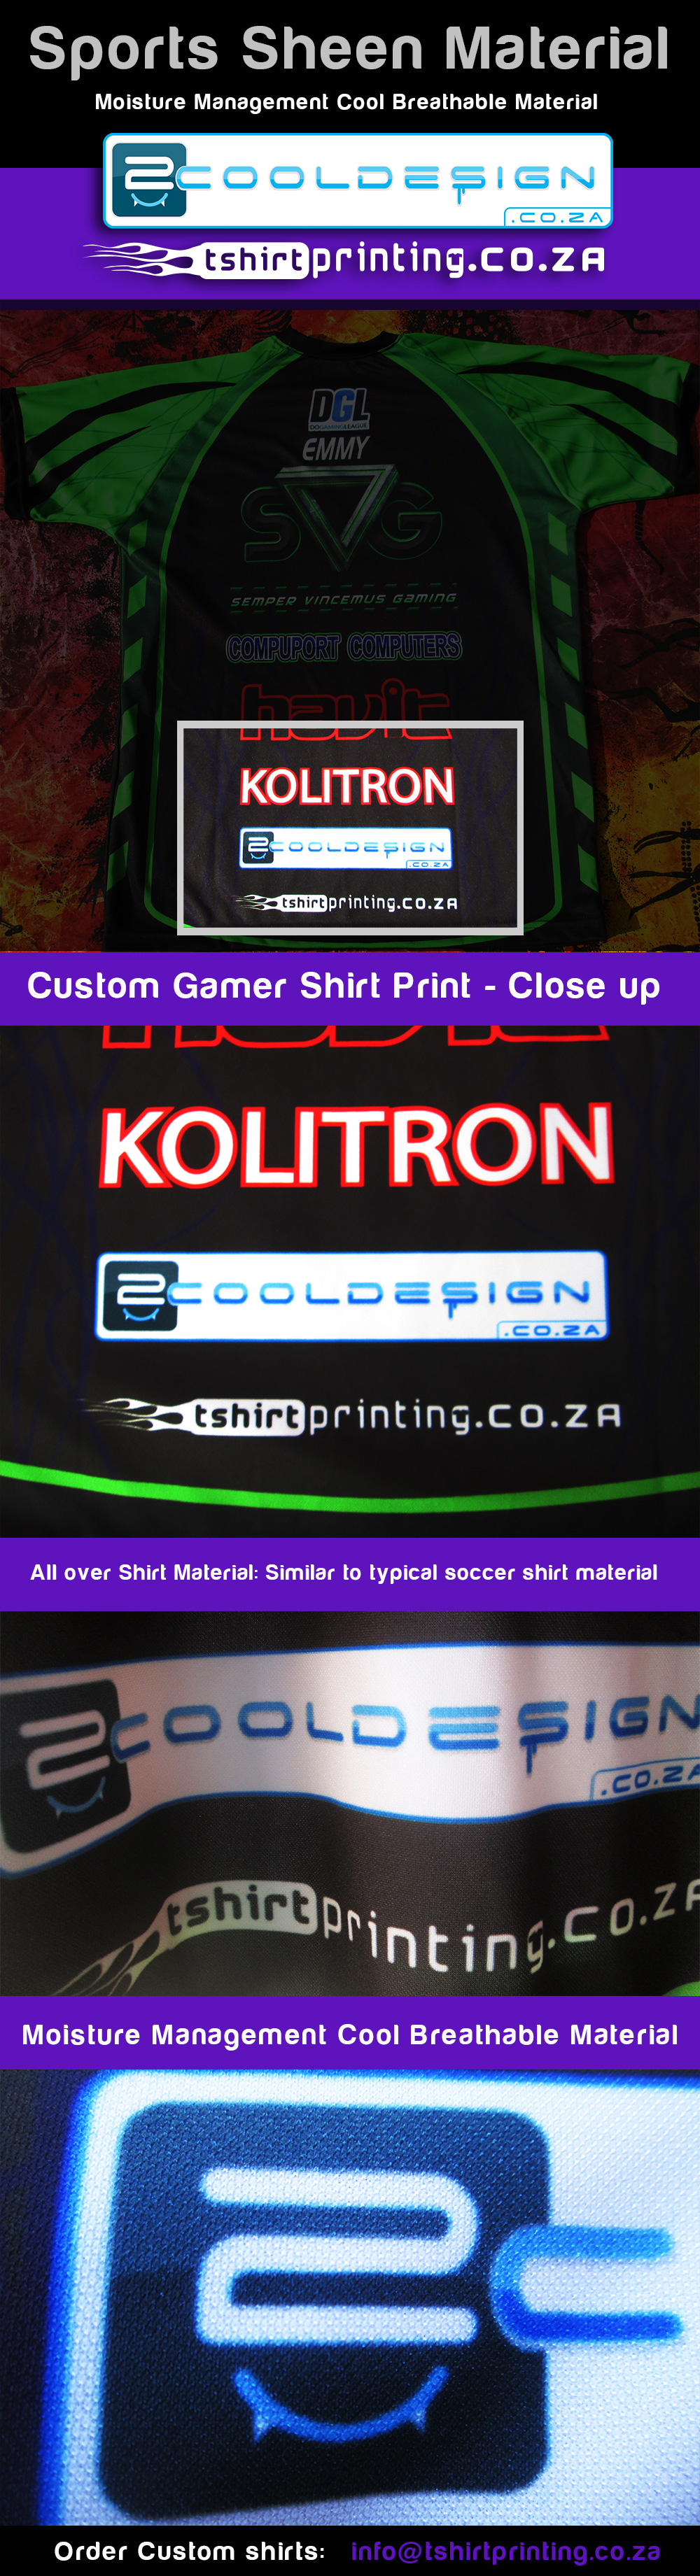 What-is-sports-sheen-material-for-All-over-printed-t-shirt-material